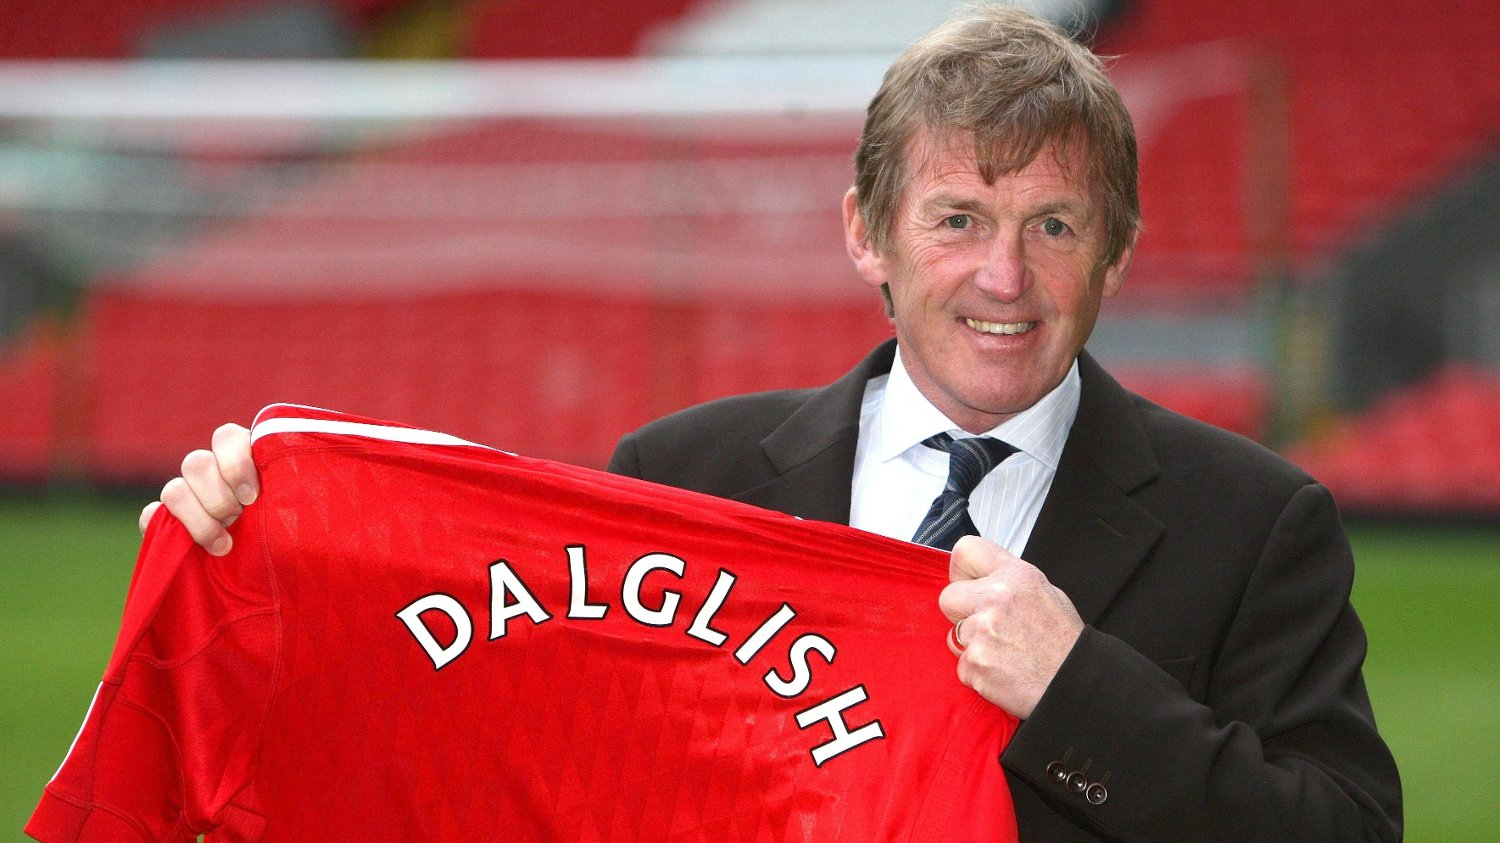 File photo dated 10-01-2011 of Liverpool manager Kenny Dalglish during a media call at Anfield, Liverpool.